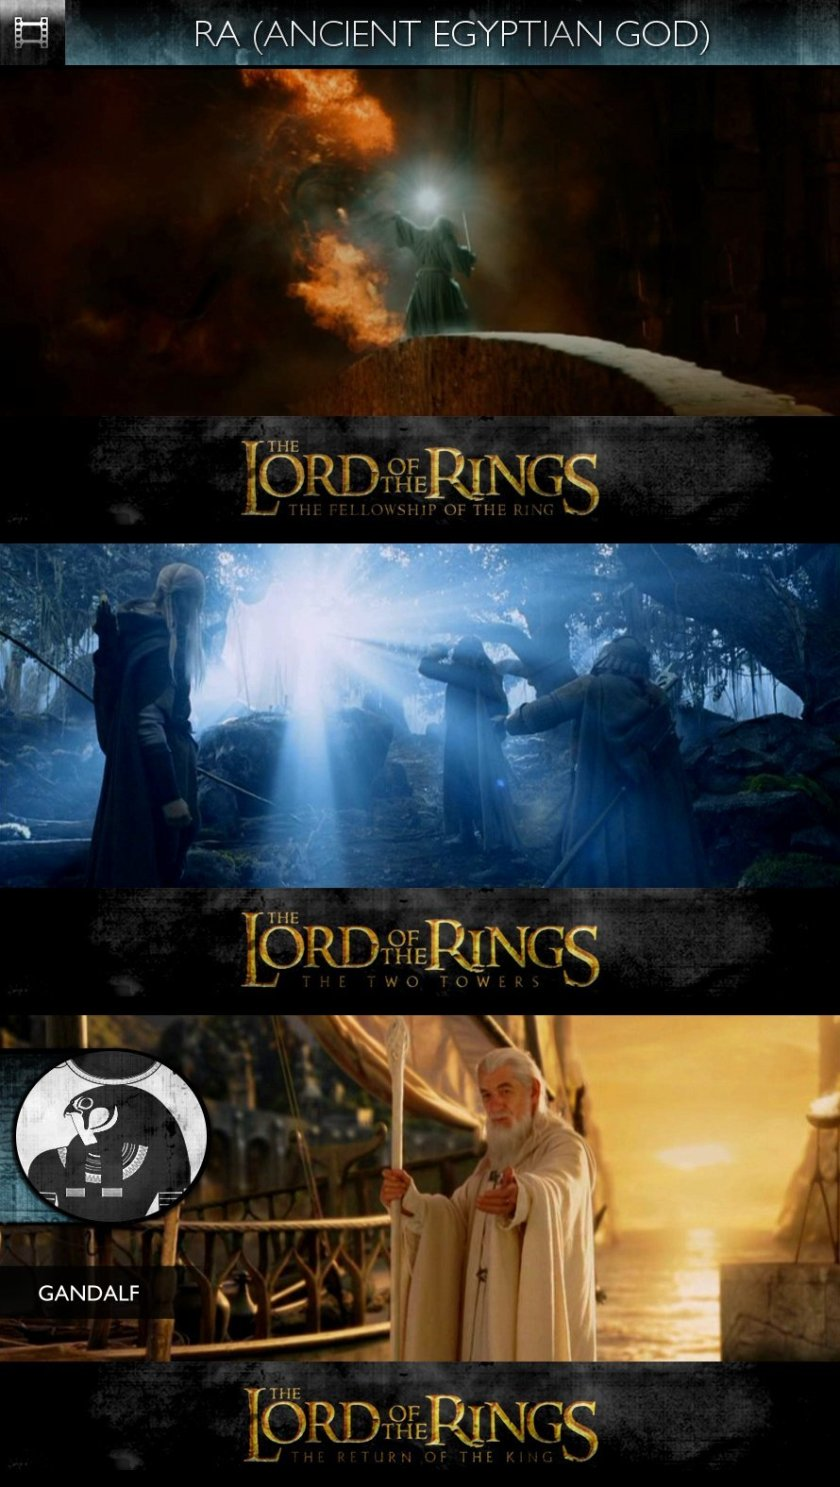 RA - The Lord Of The Rings (2001-2003) - Gandalf